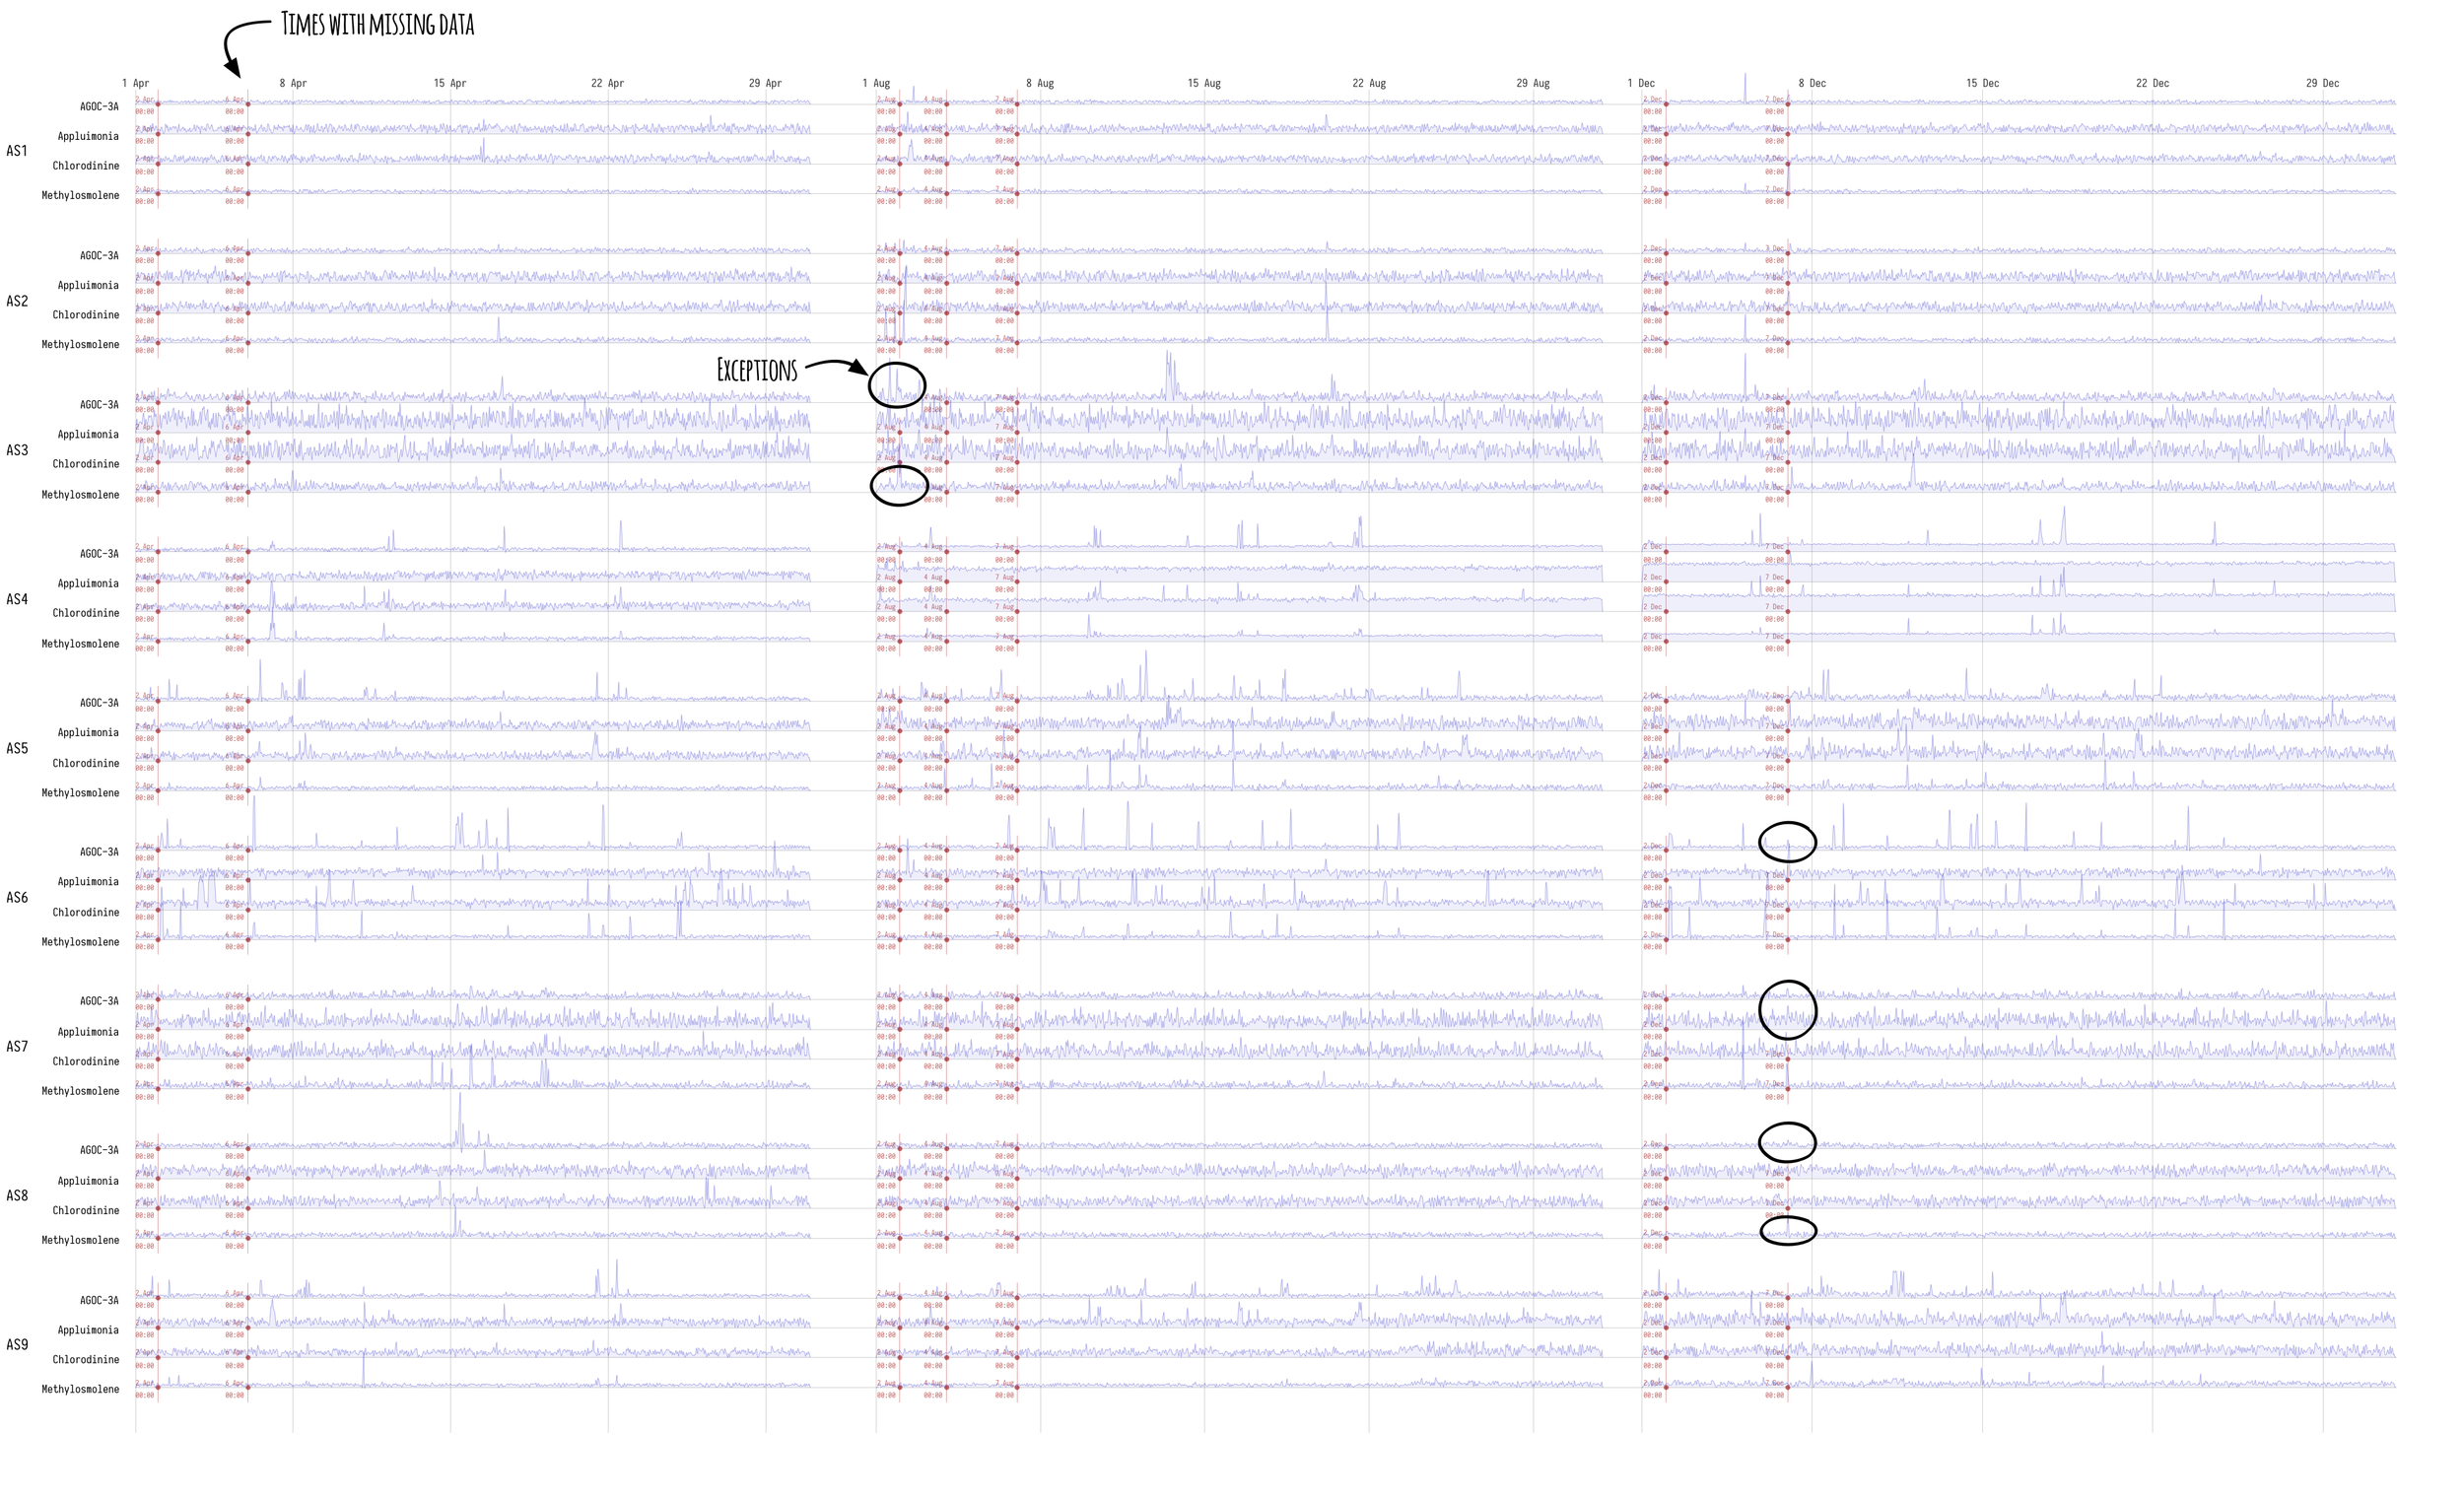 Figure 2  - Missing midnight readings (in red) over the three month-long periods.